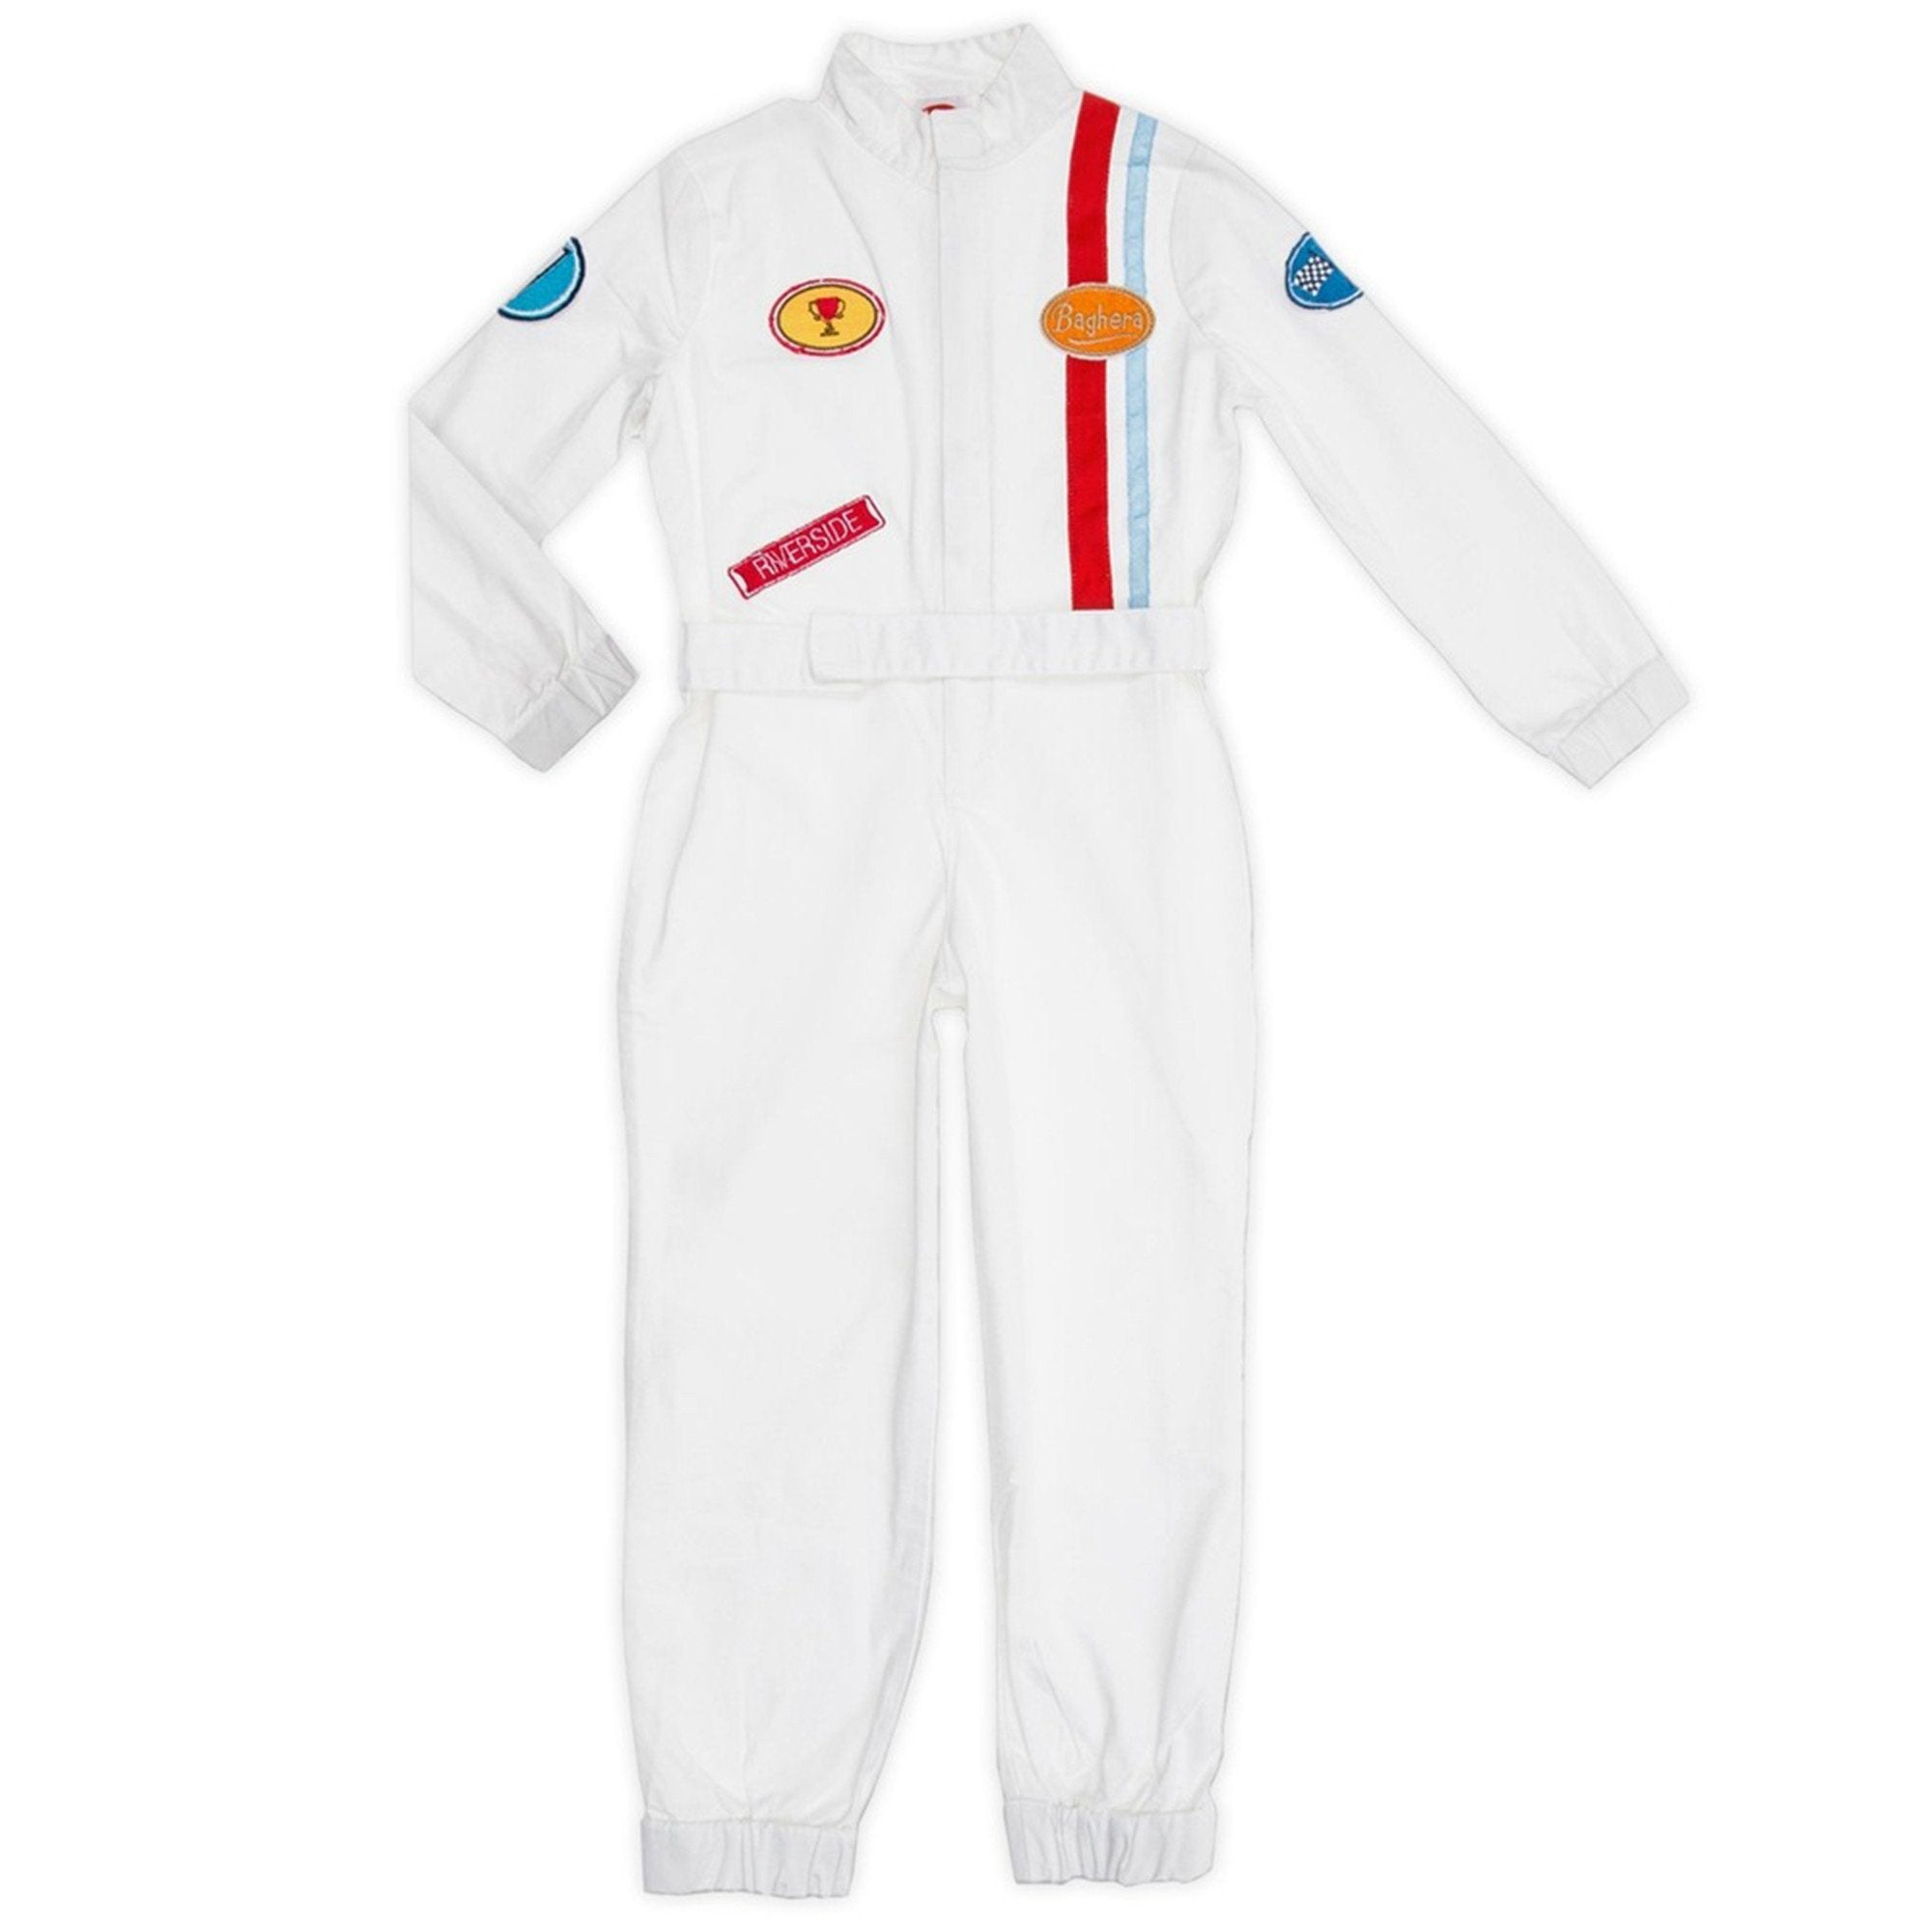 kids baghera racing car driver costume baghera little earth nest 2